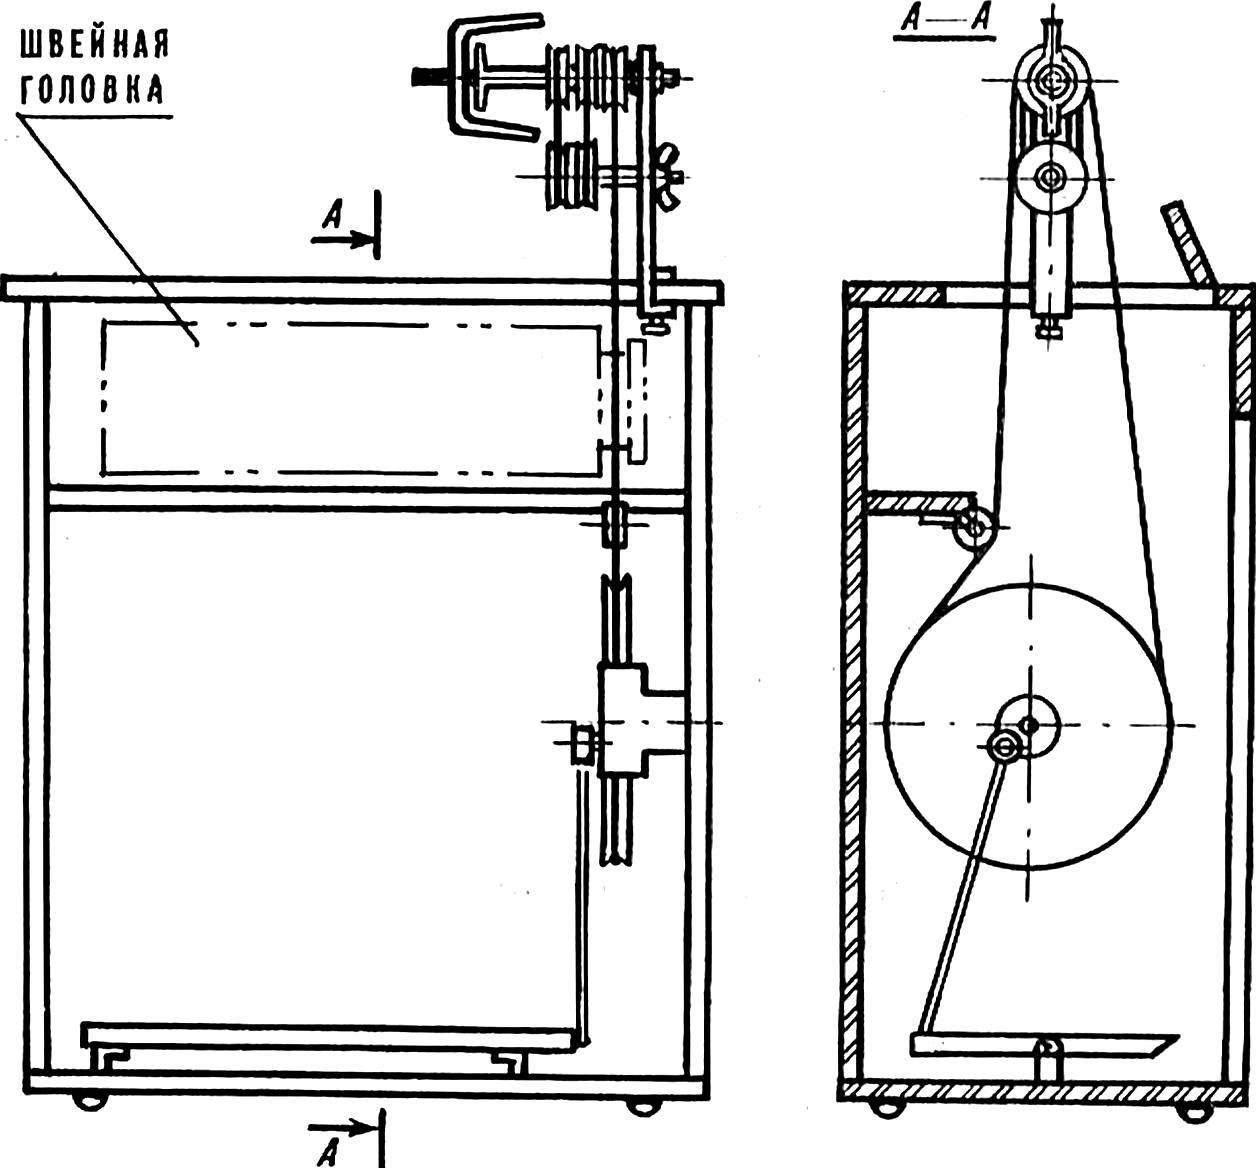 Wiring diagram for a set top box to the sewing machine with a treadle.